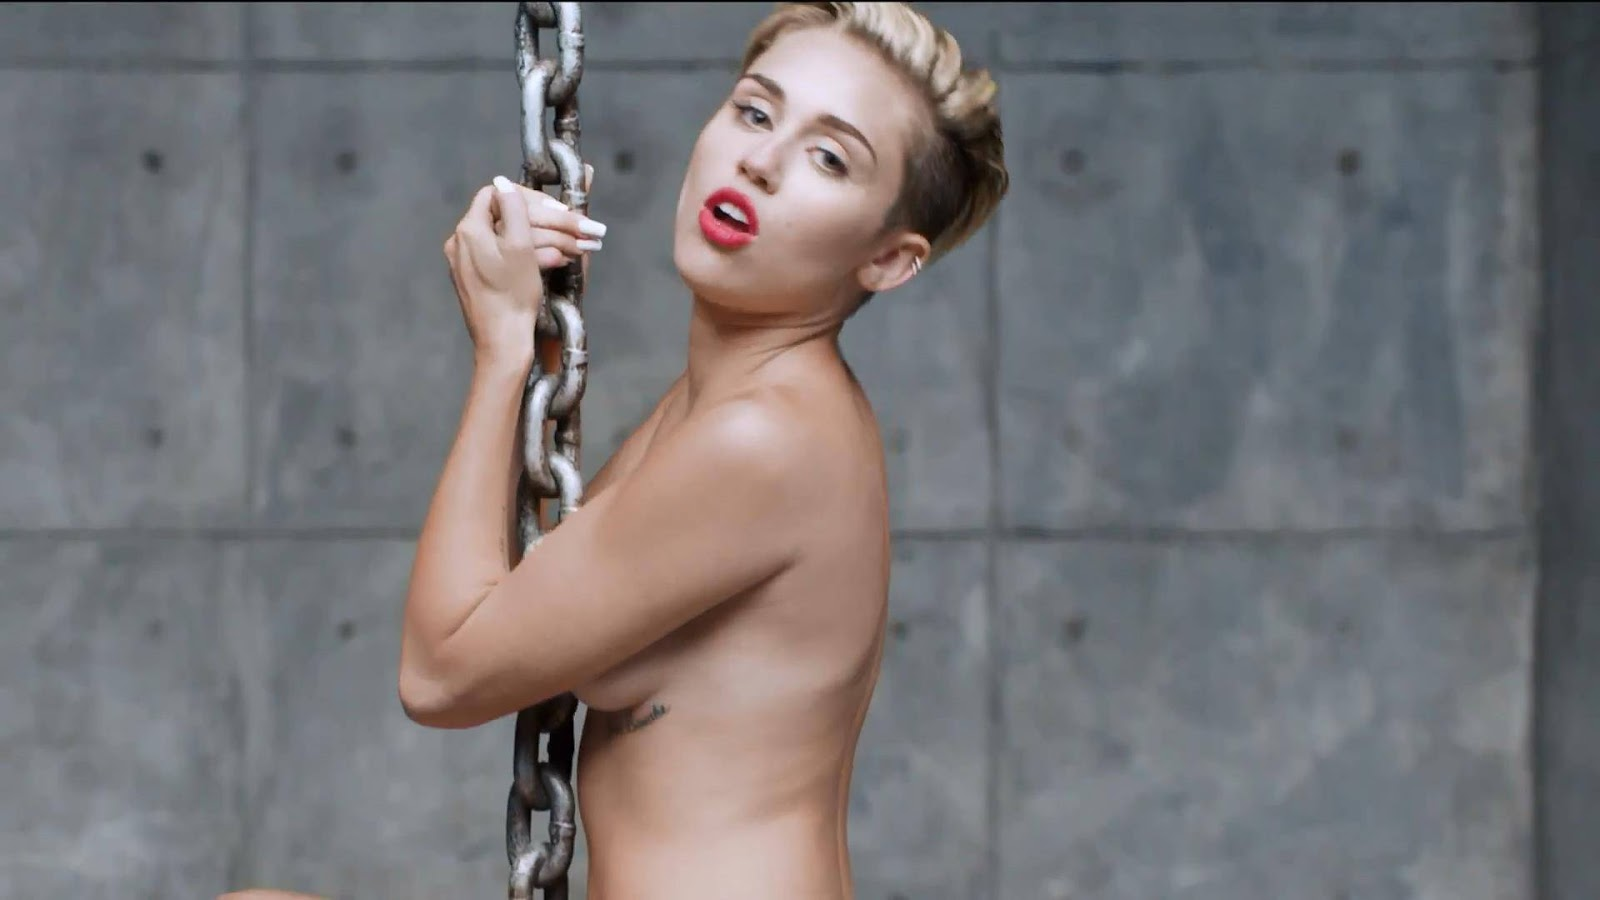 miley cyrus full porn video for free